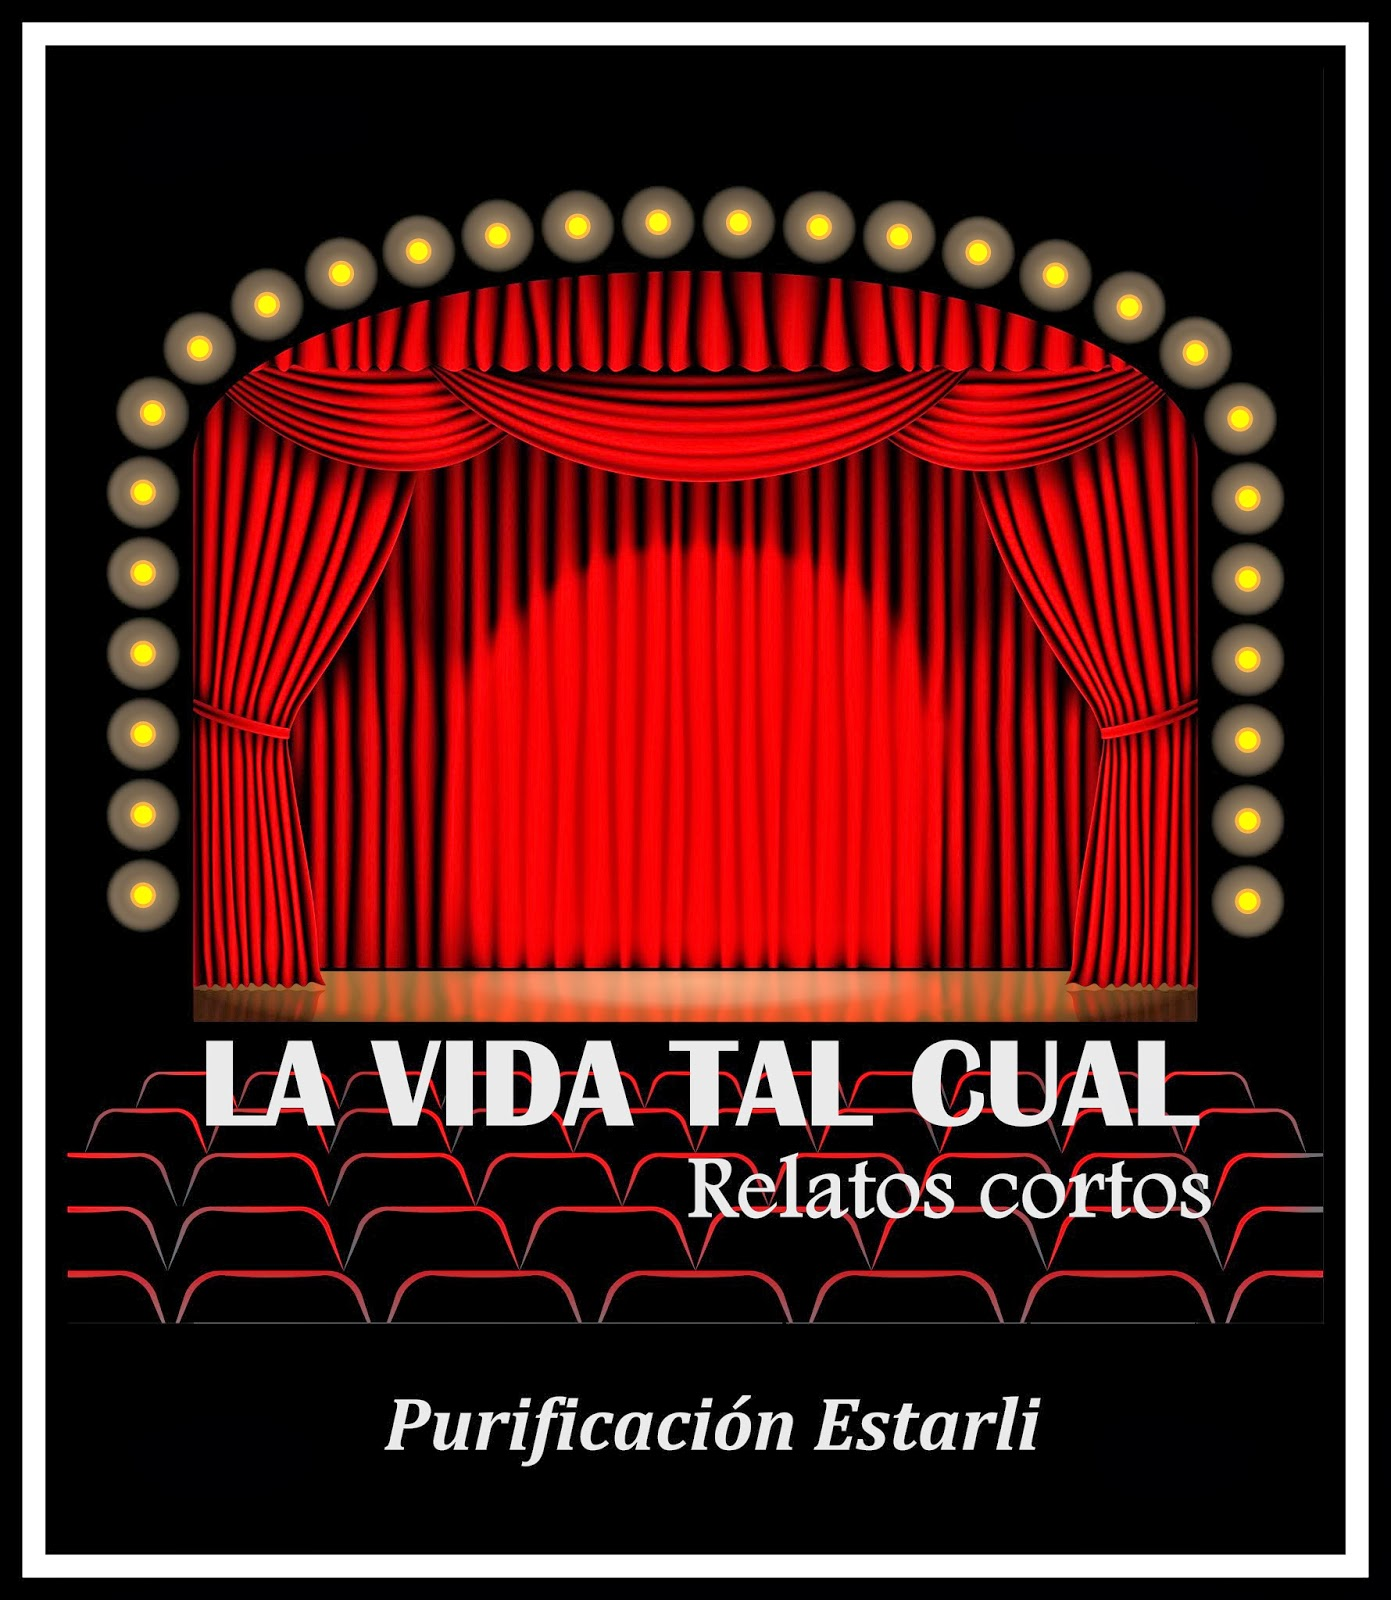 http://www.amazon.es/VIDA-TAL-CUAL-Relatos-cortos-ebook/dp/B00HSIU10G/ref=sr_1_5?s=books&ie=UTF8&qid=1389454427&sr=1-5&keywords=Purificaci%C3%B3n+Estarli